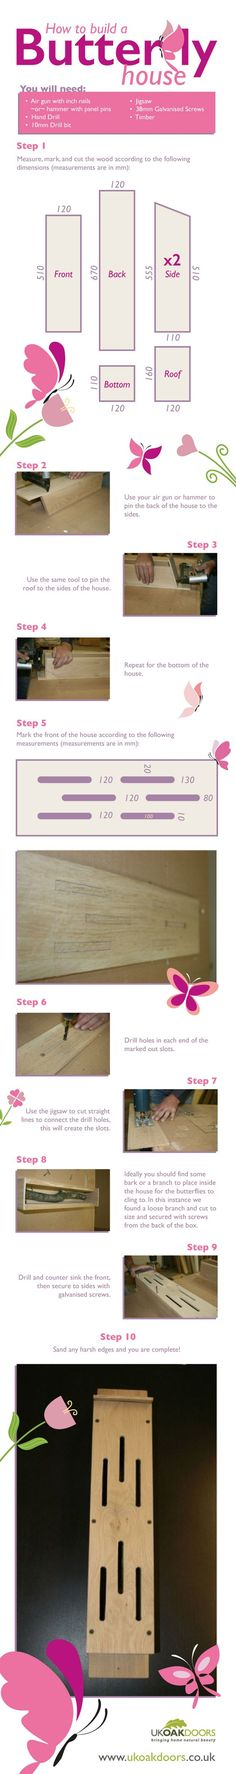 How to build a butterfly house in ten simple steps - with photos #butterflies #DIY #infographics